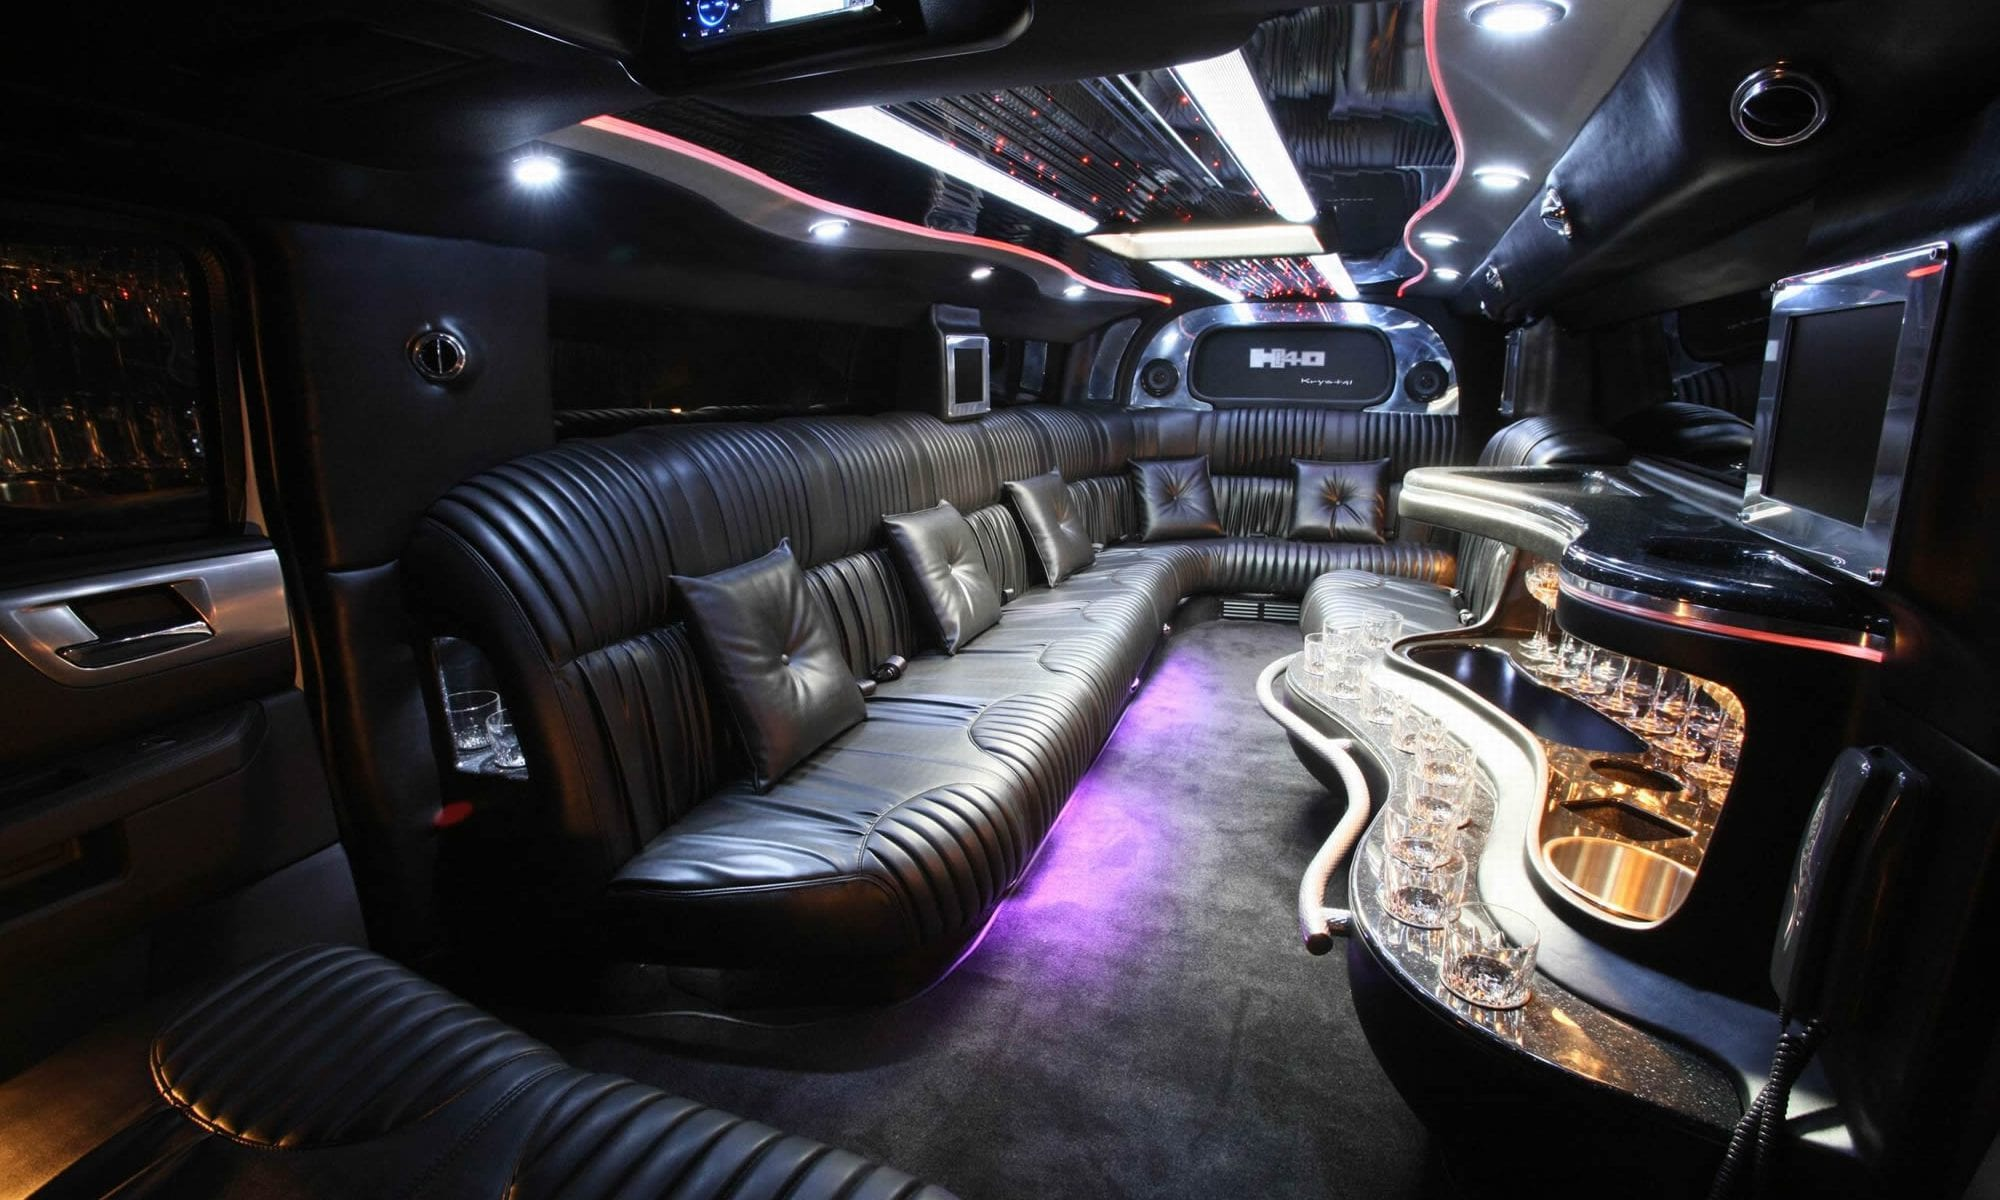 Prom Limo Rentals Prom Limo Long Island Prom Limo Bus